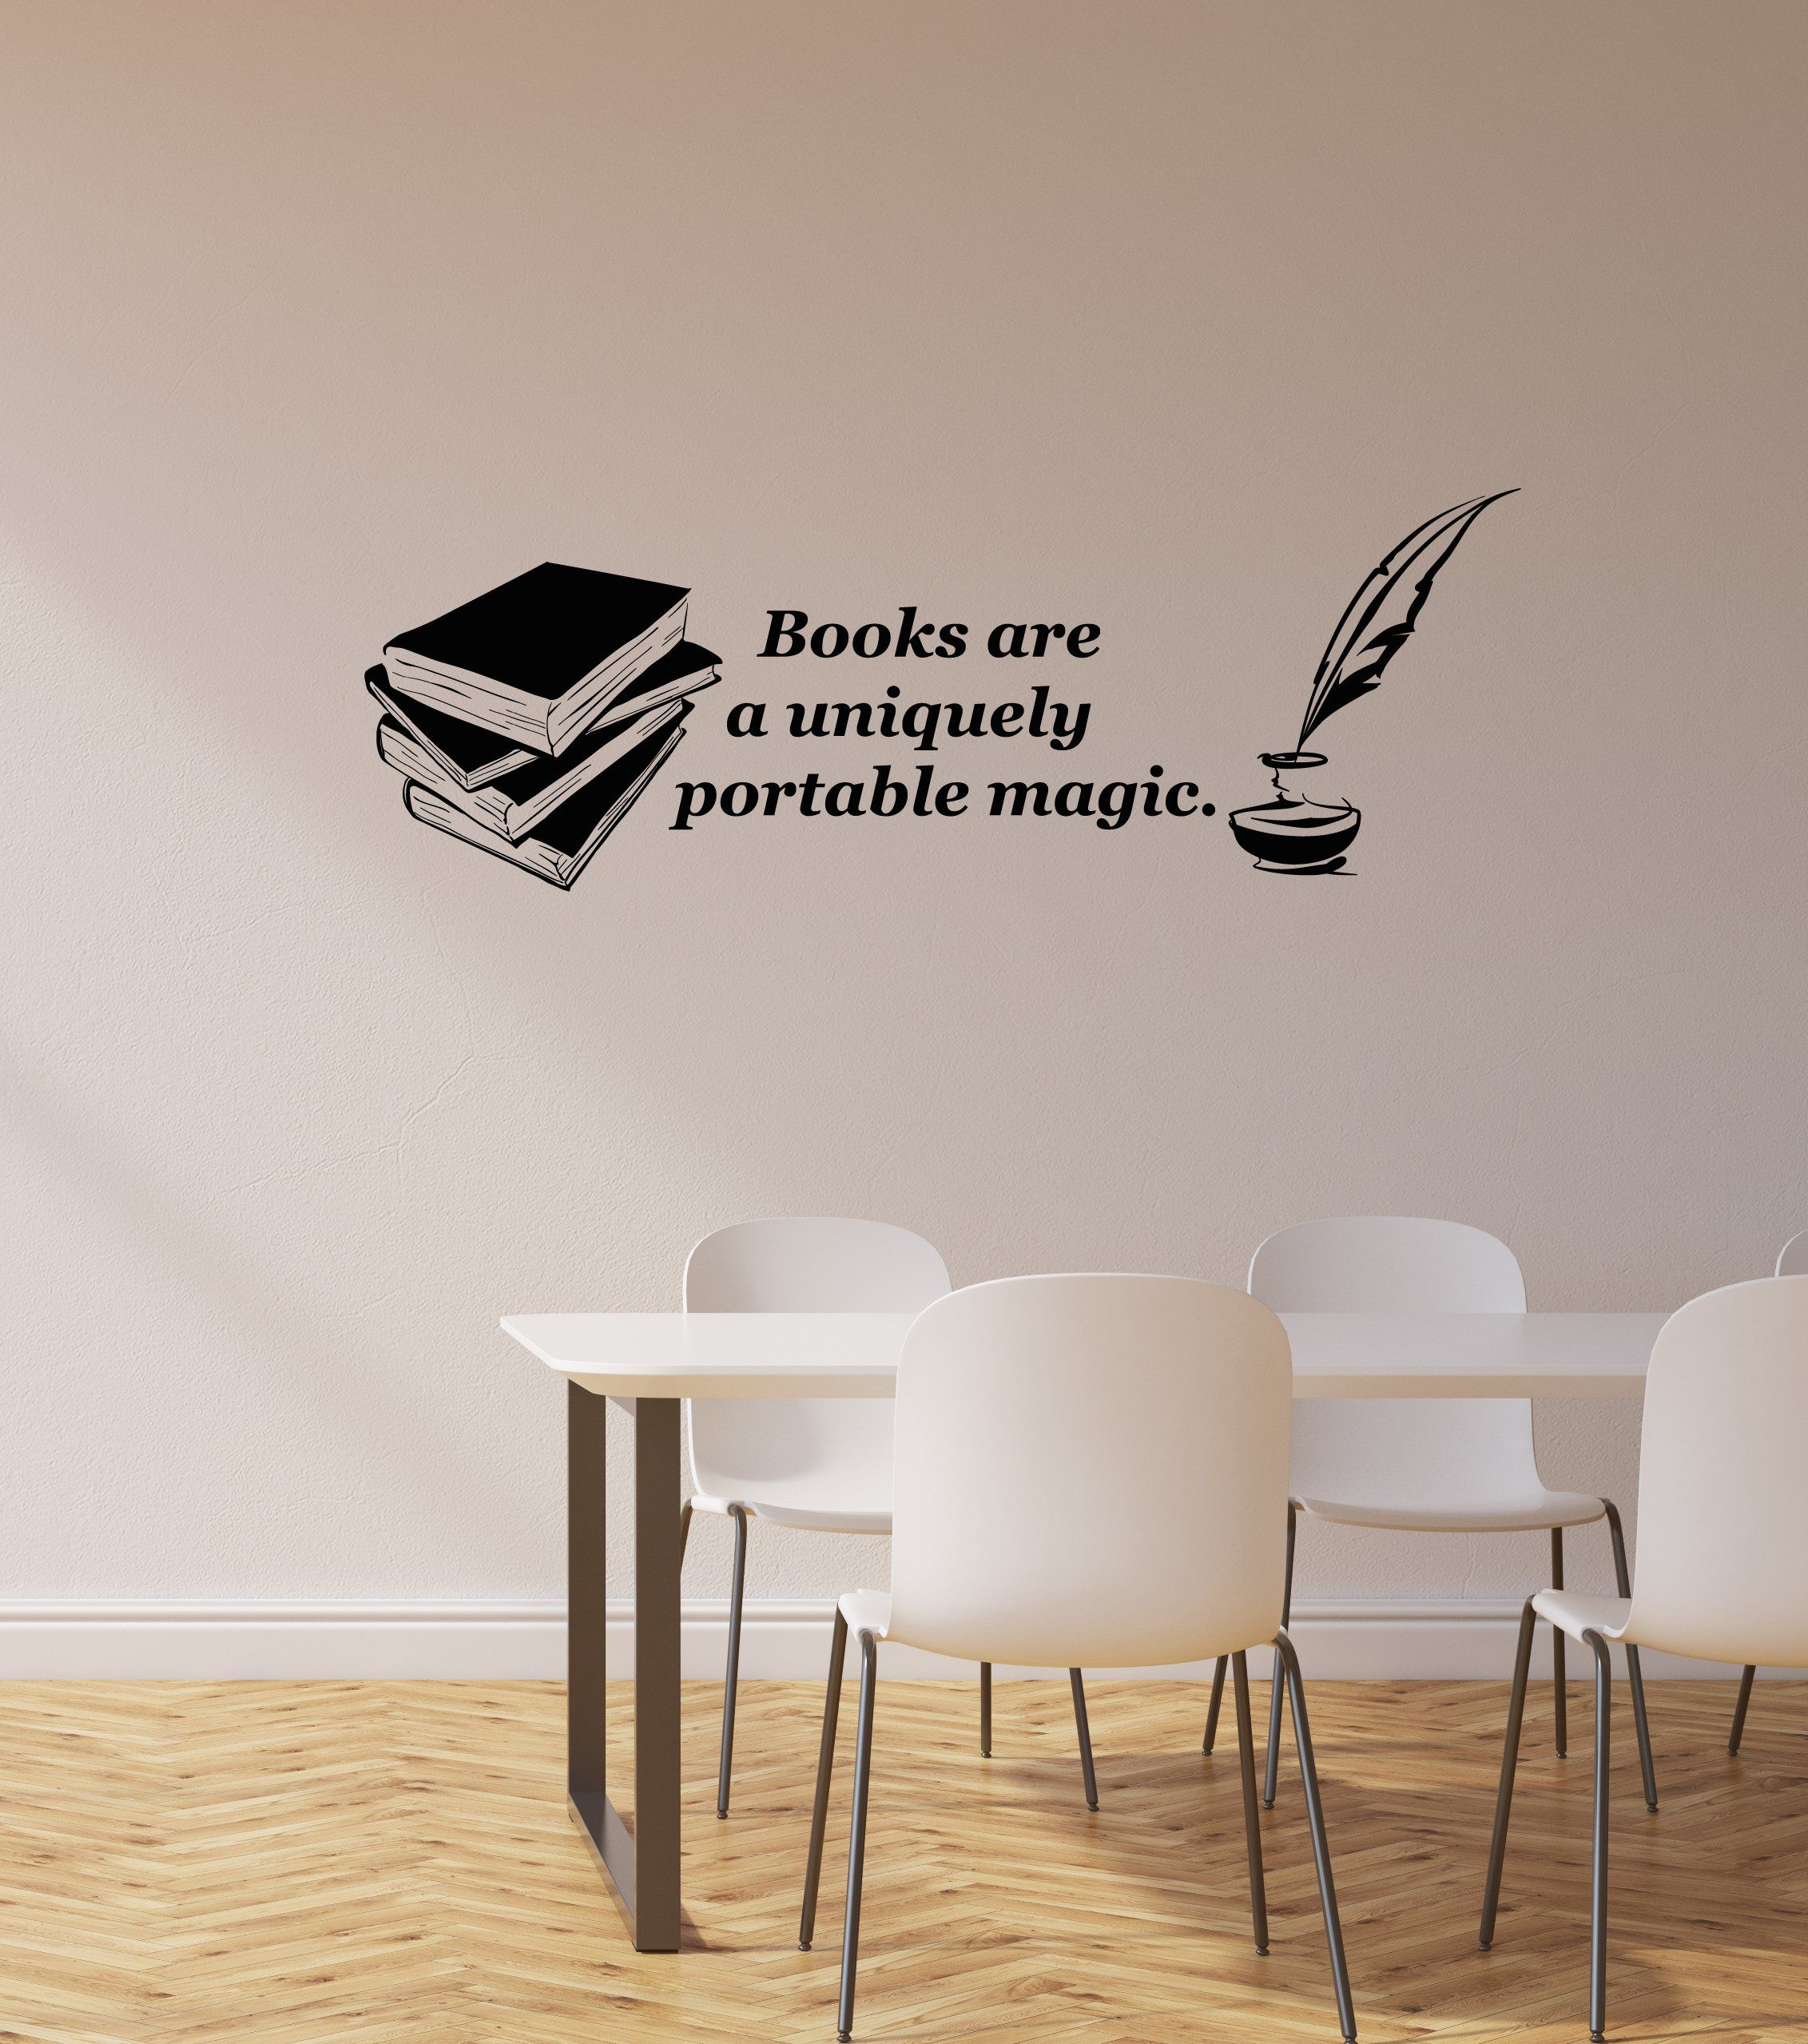 DIY For Universal Room Vinyl Home Room Decor Art Quote Wall Decal Sticker Mural